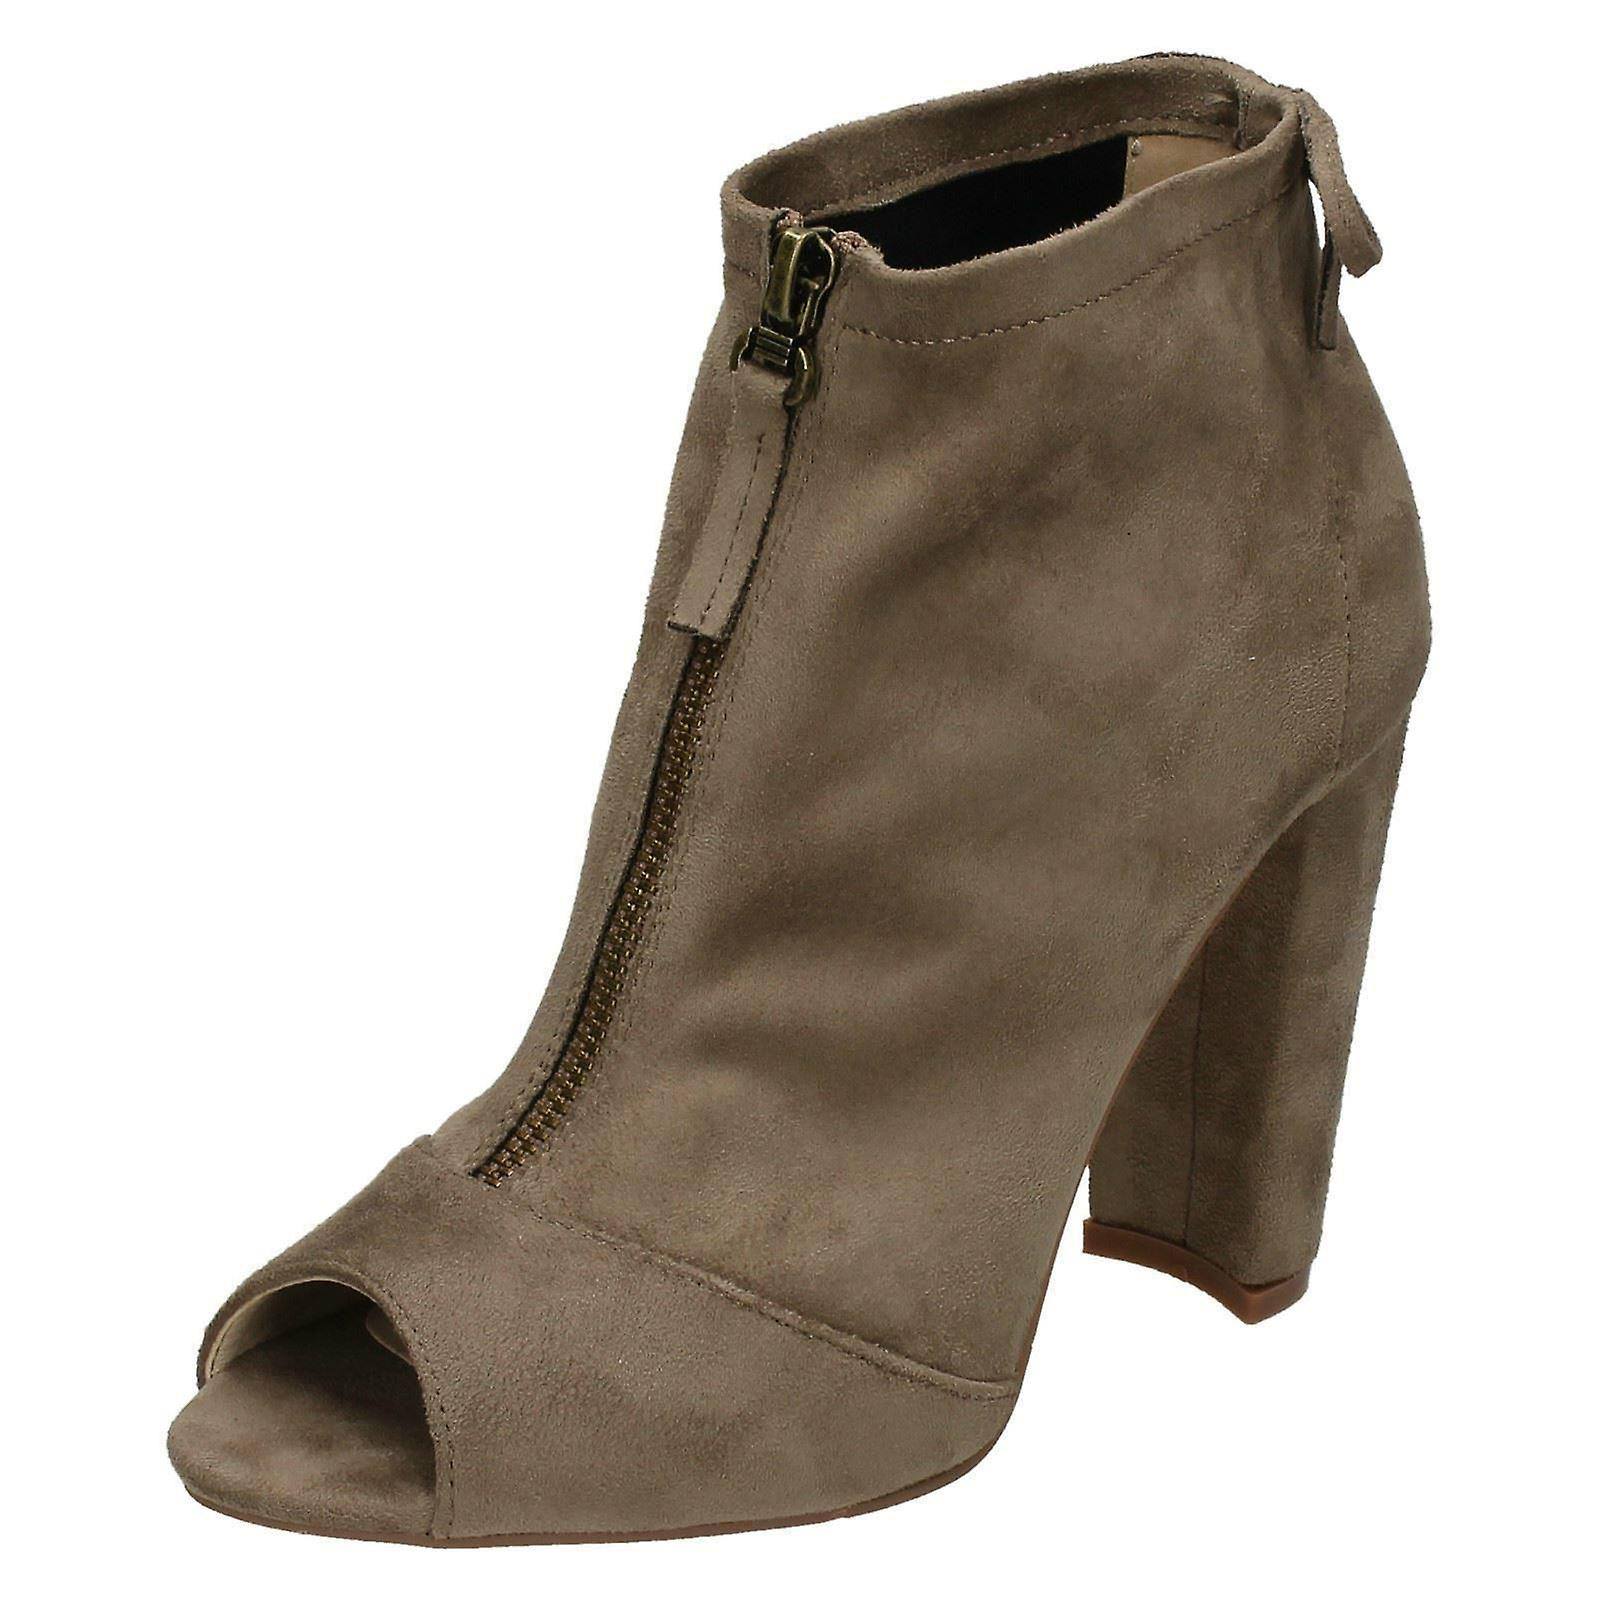 Ladies Spot On Peep Toe Ankle Boots F10724 bmCiM